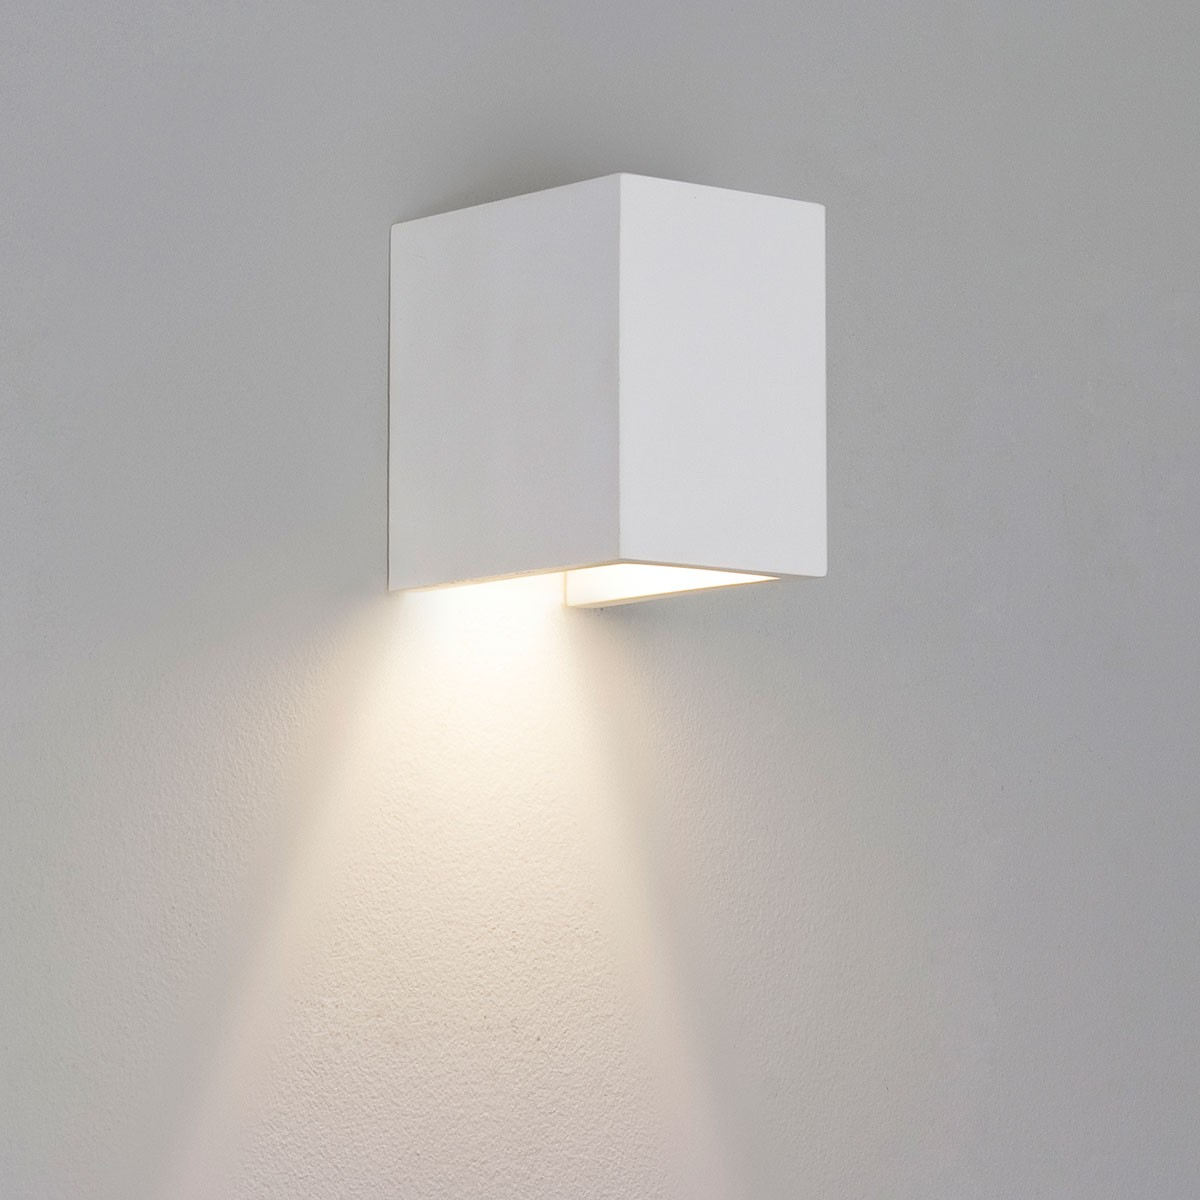 Astro Parma 110 Plaster Wall Light at UK Electrical Supplies.